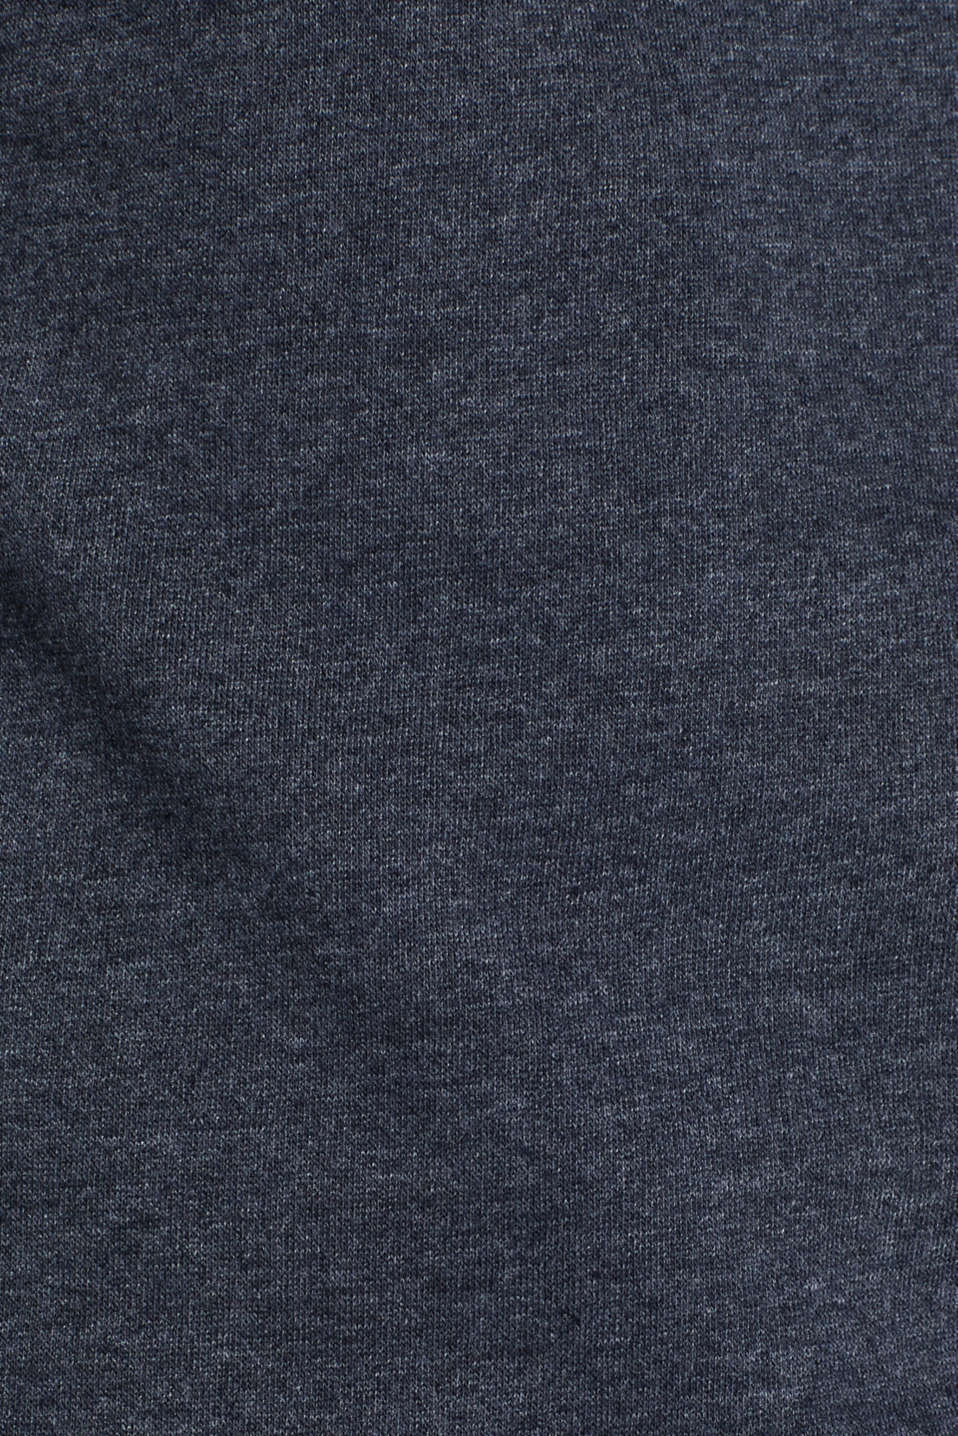 Sweatshirt with logo, 100% cotton, NAVY, detail image number 4